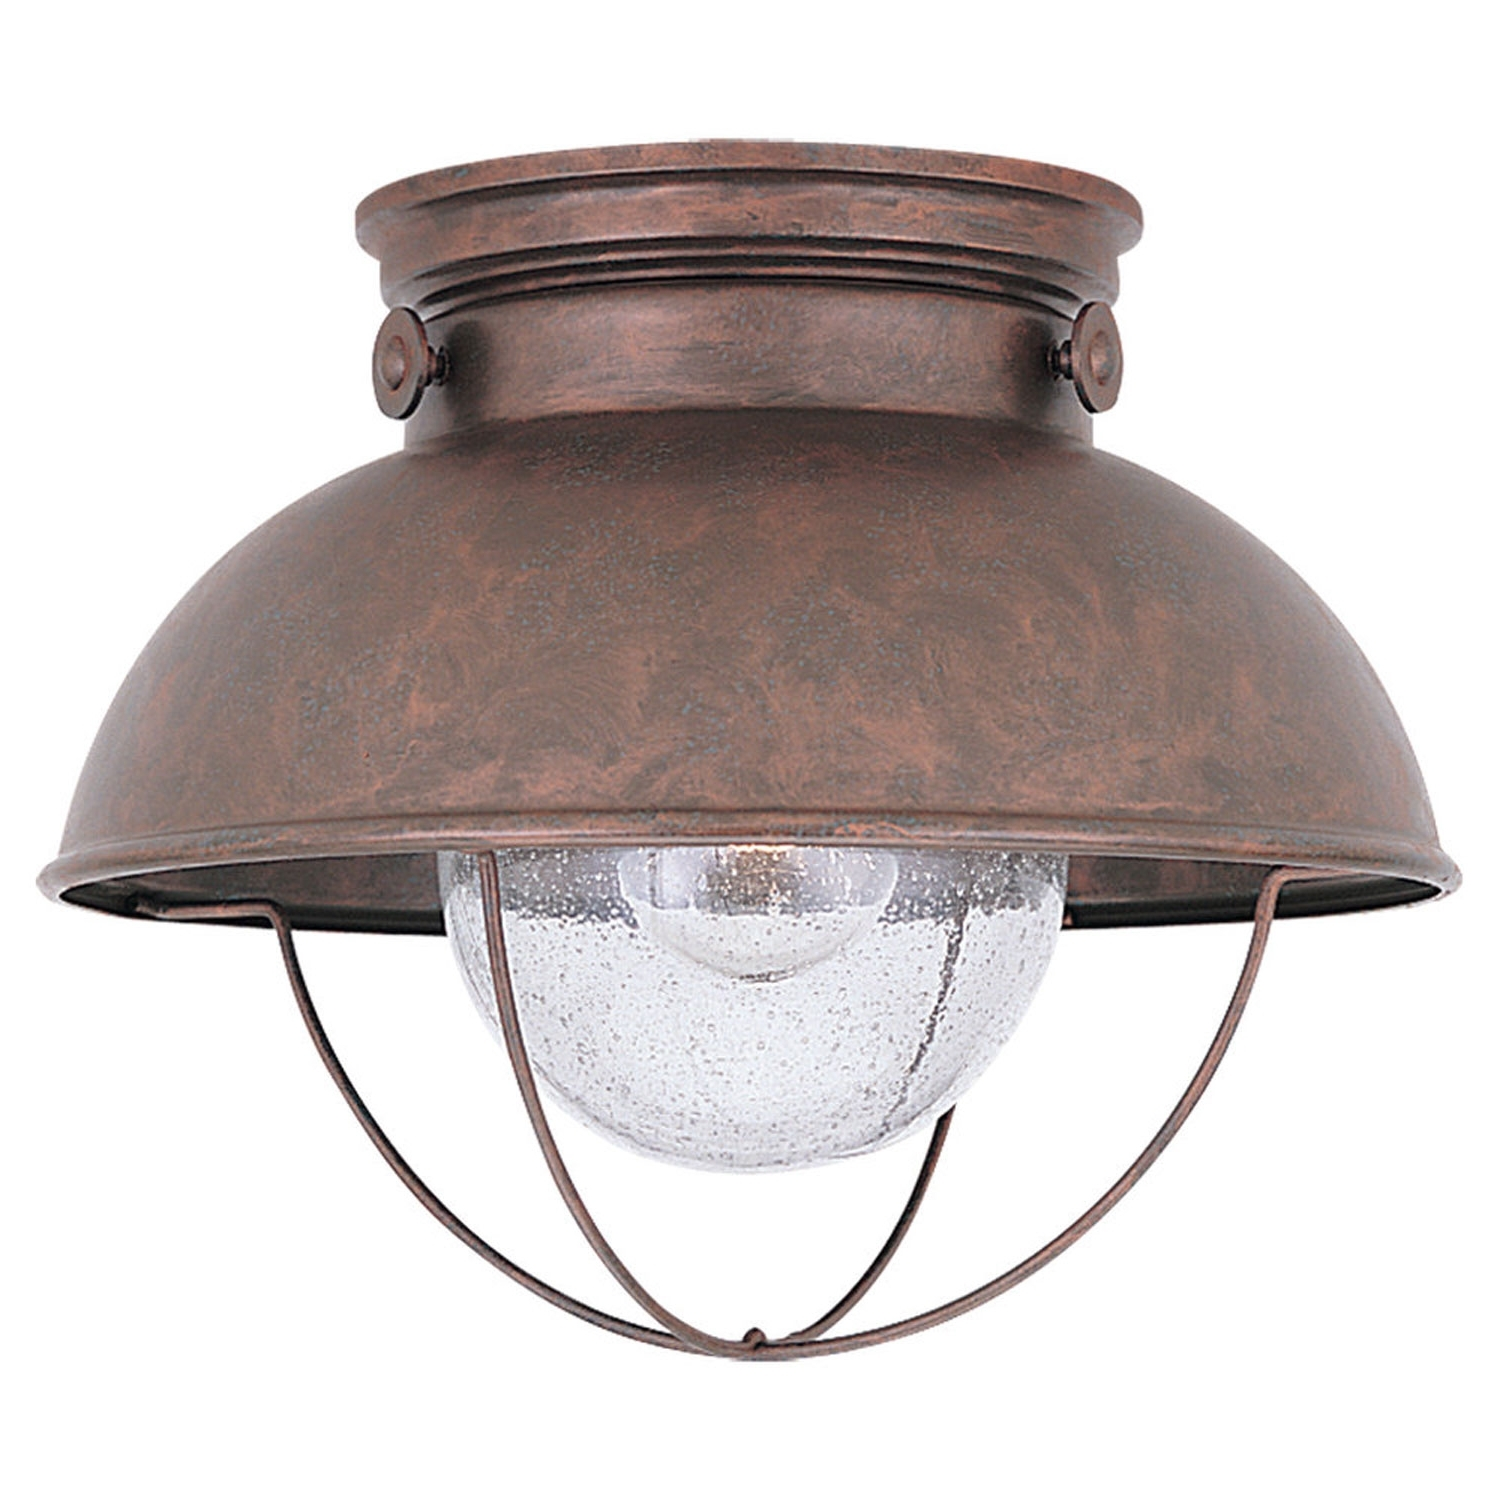 Sea Gull Lighting Sebring Weathered Copper Outdoor Ceiling Light On Sale Regarding Latest Outdoor Ceiling Fans With Copper Lights (View 15 of 20)